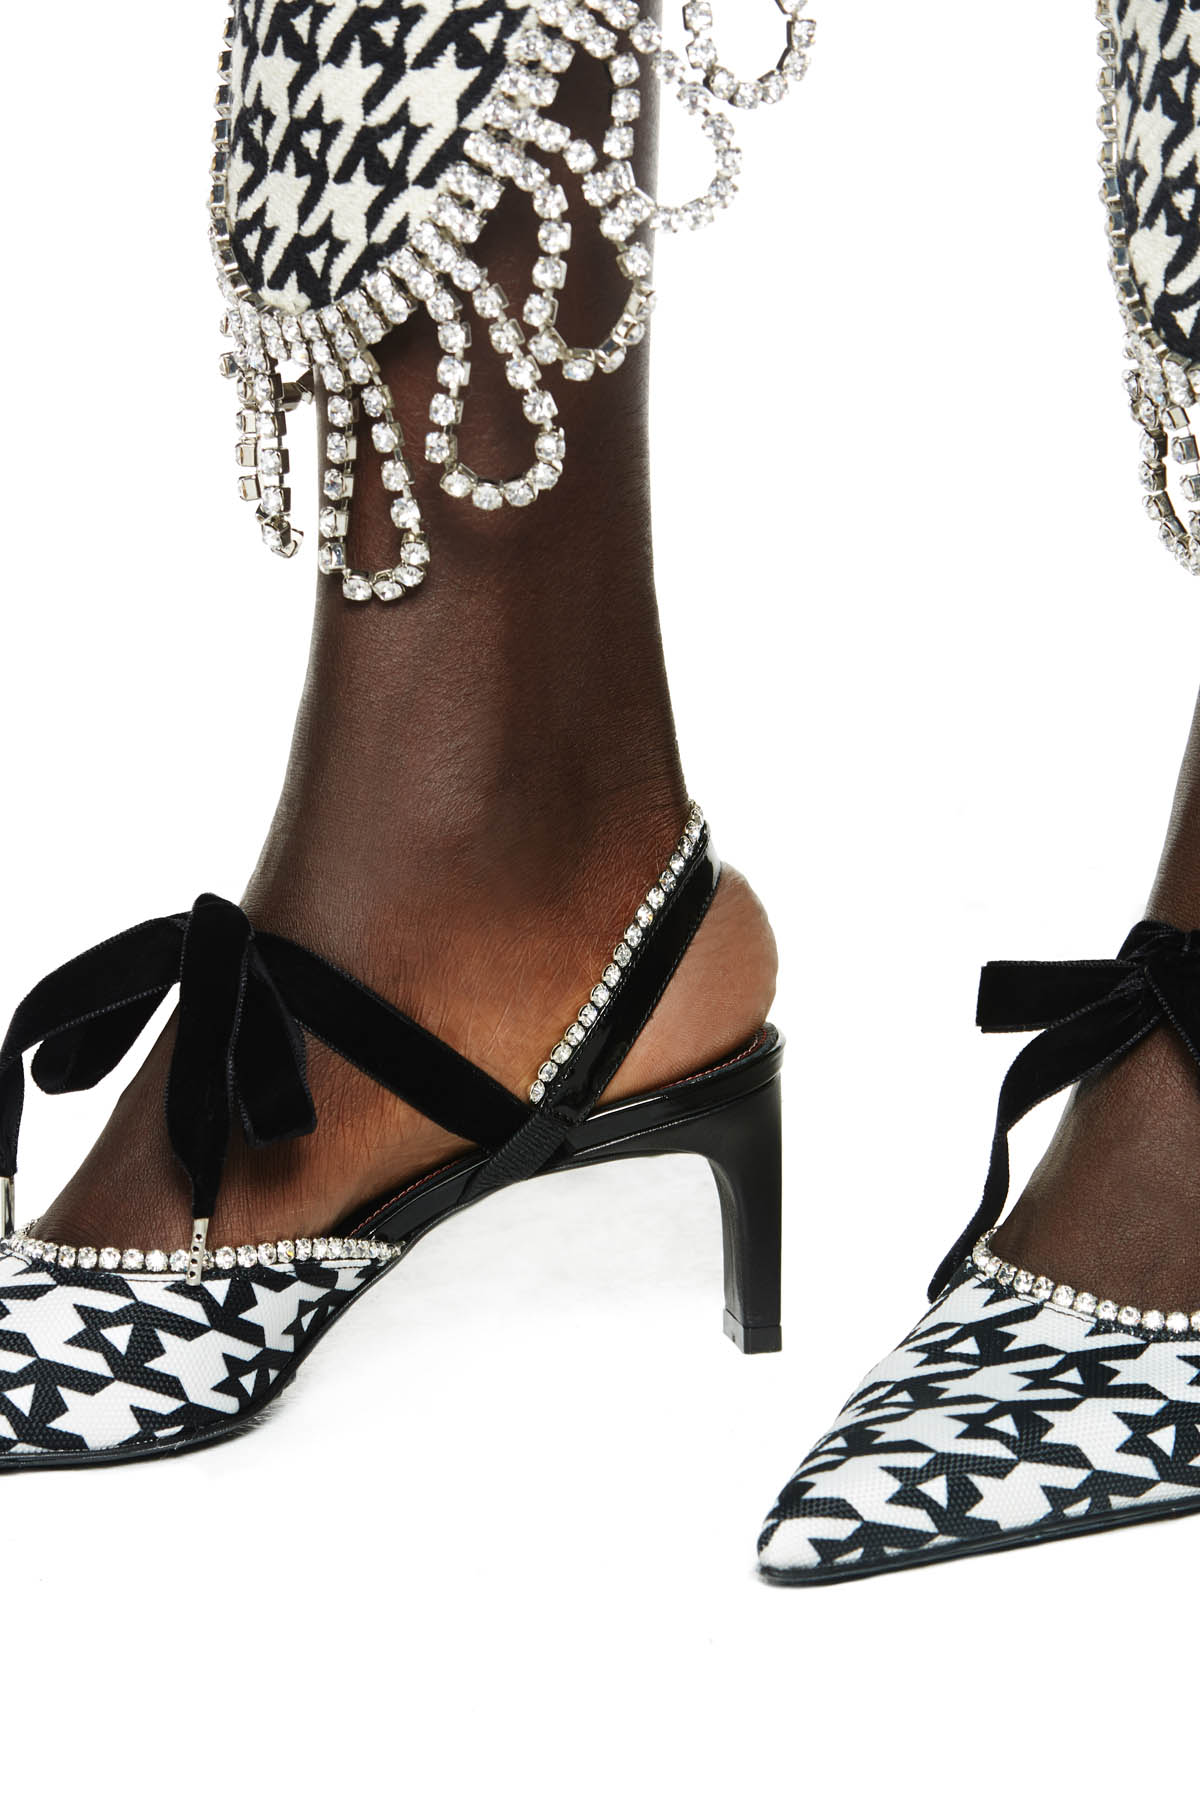 Pointed toe kitten heel with velvet tie closure and crystal trim. 65MM heel. Available in houndstooth.